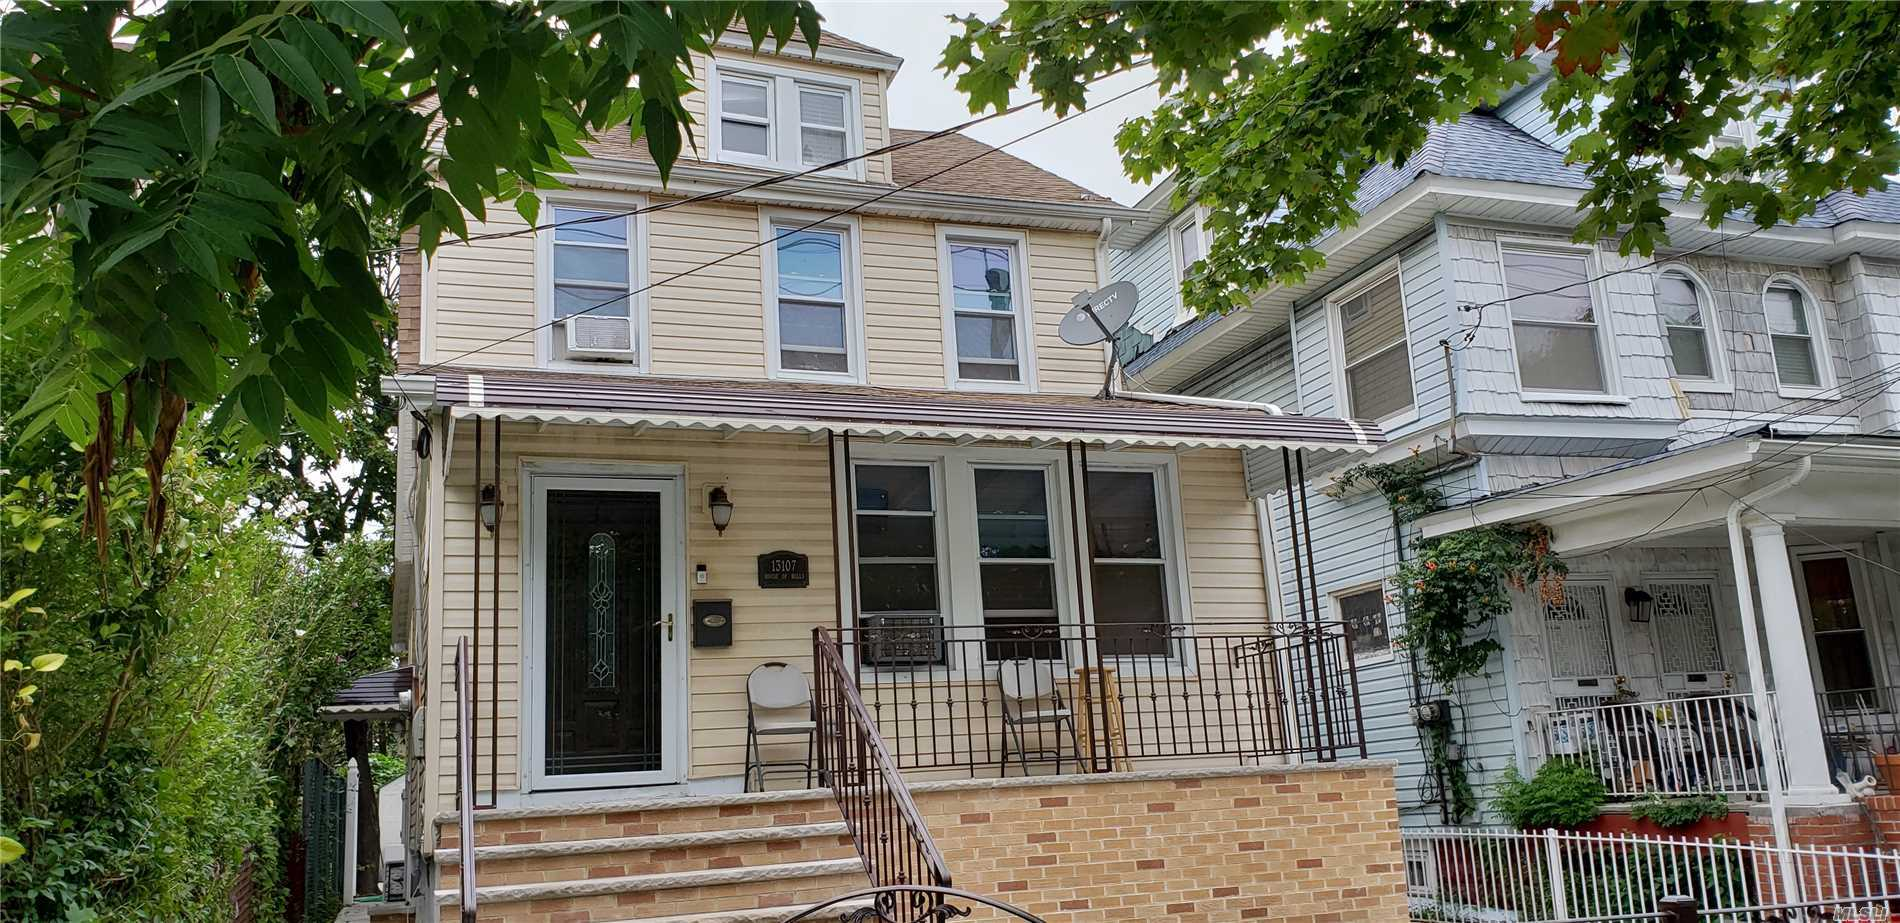 Property for sale at 131-07 107 Ave, Richmond Hill,  New York 11419